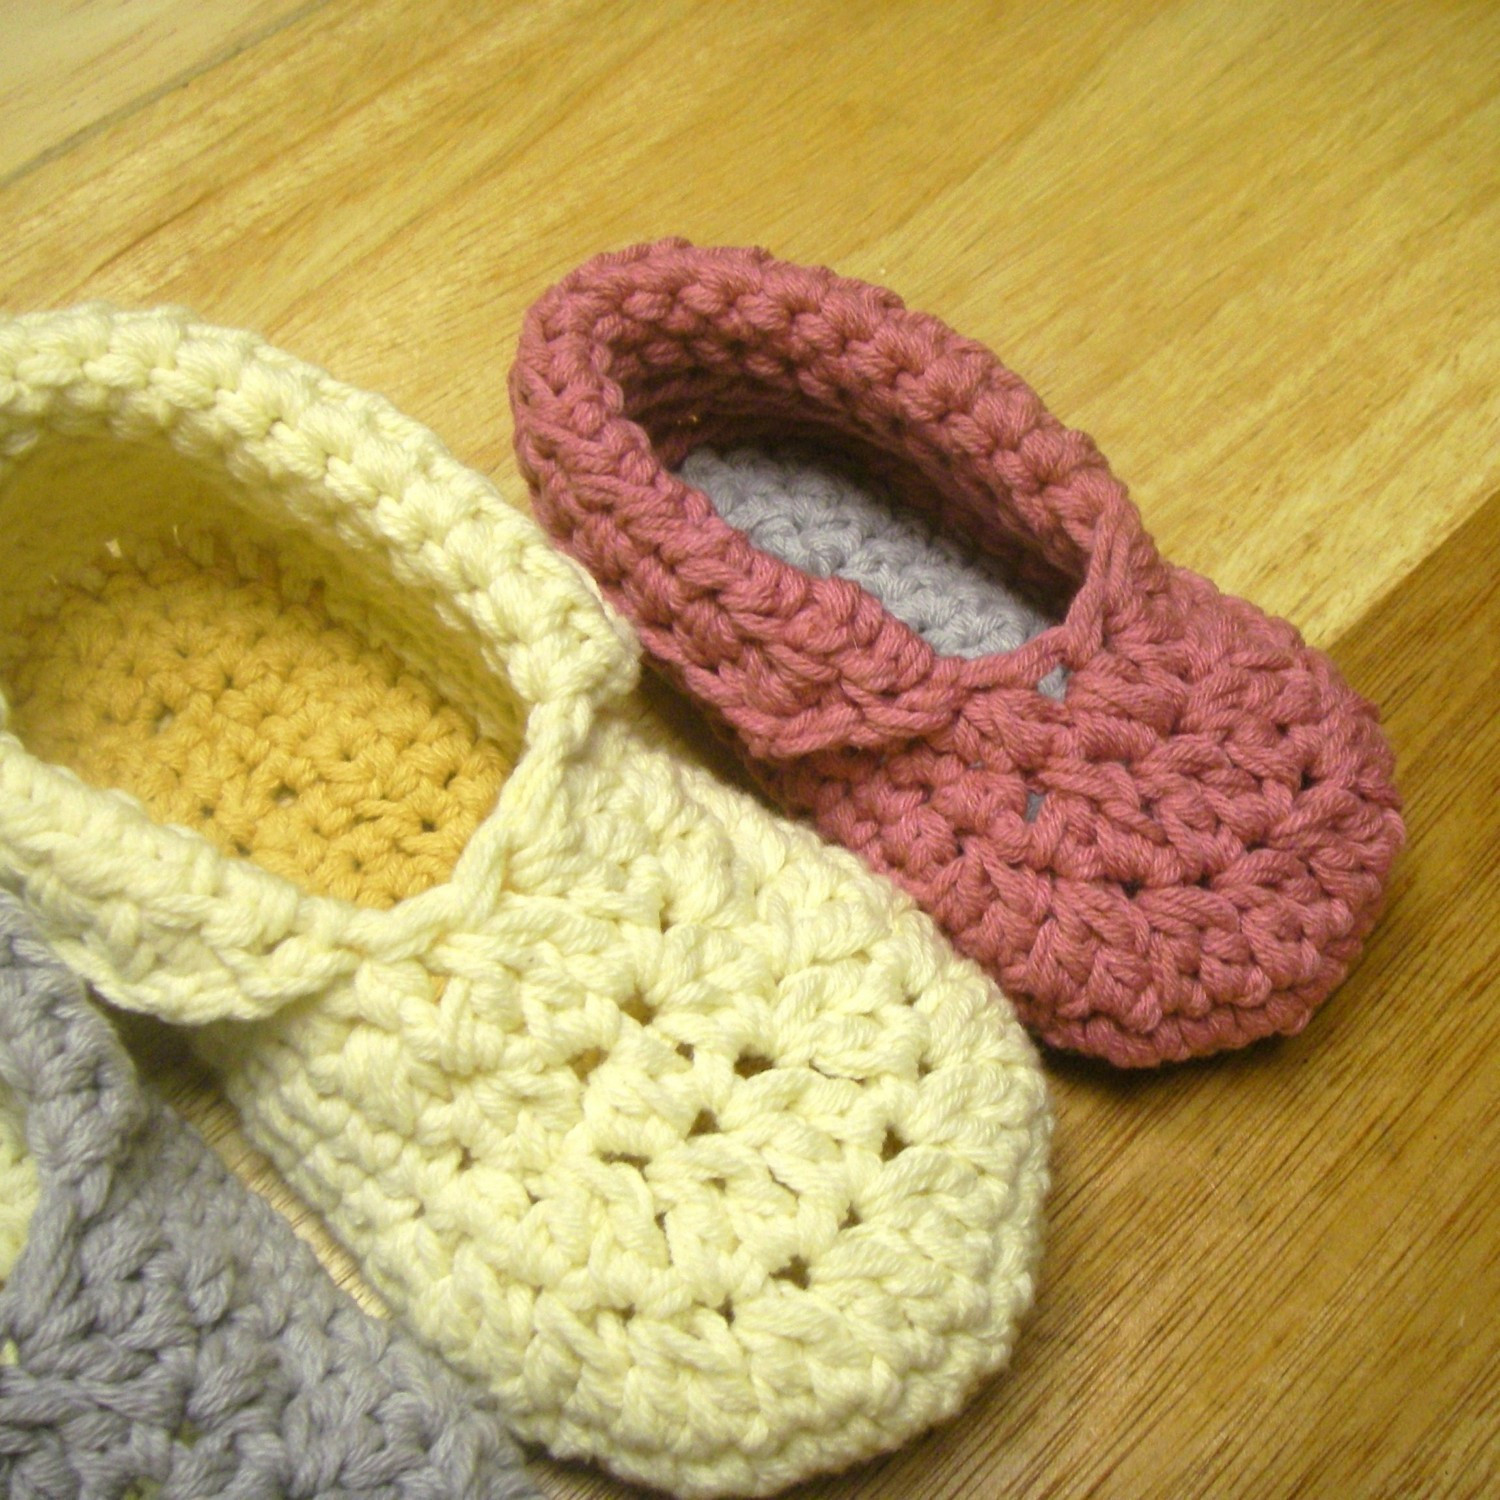 Luxury Crochet toddler Slippers Crochet and Knit Crochet Patterns for Kids Of Gorgeous 46 Photos Crochet Patterns for Kids